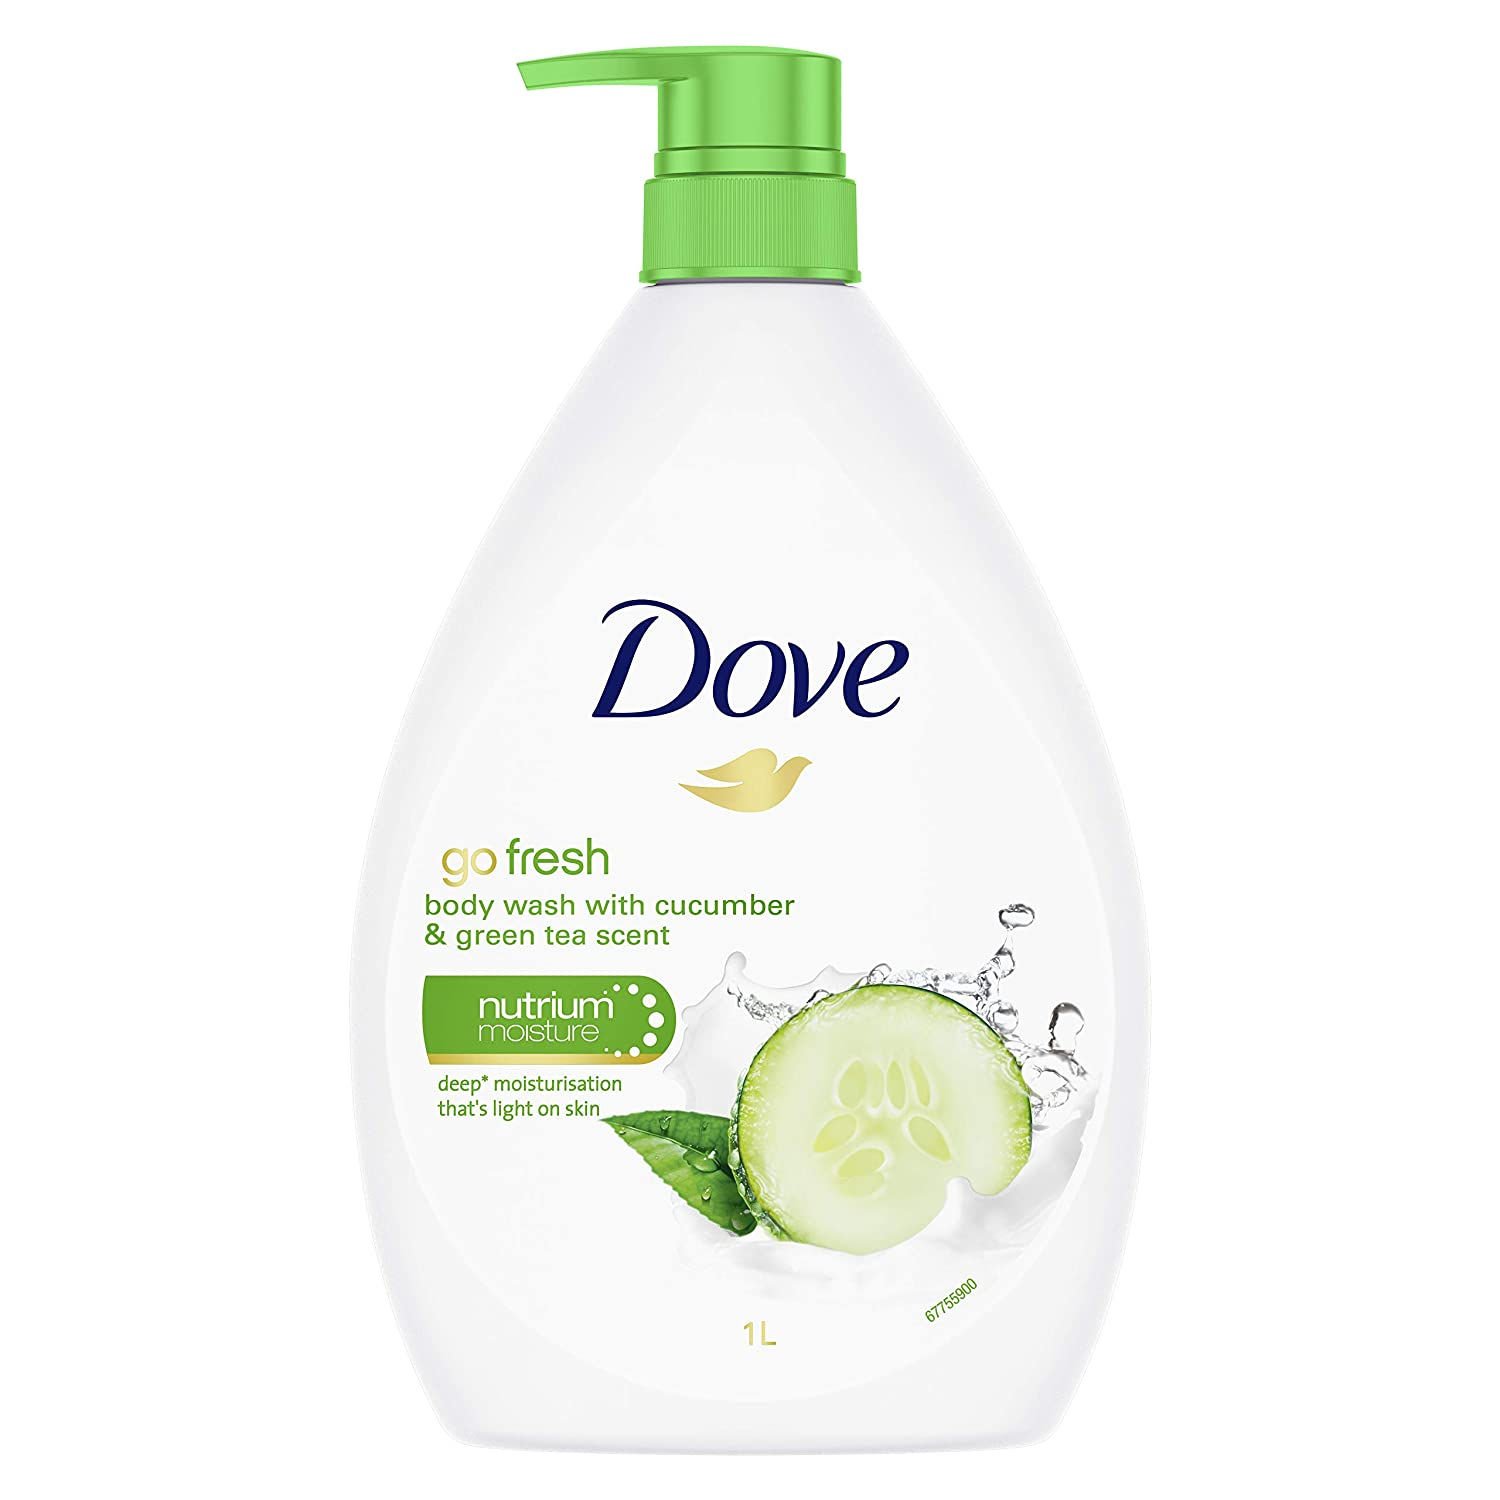 Amazon Com Dove Go Fresh Touch Body Wash Cucumber And Green Tea 33 8 Ounce 1 Liter International Version Beauty